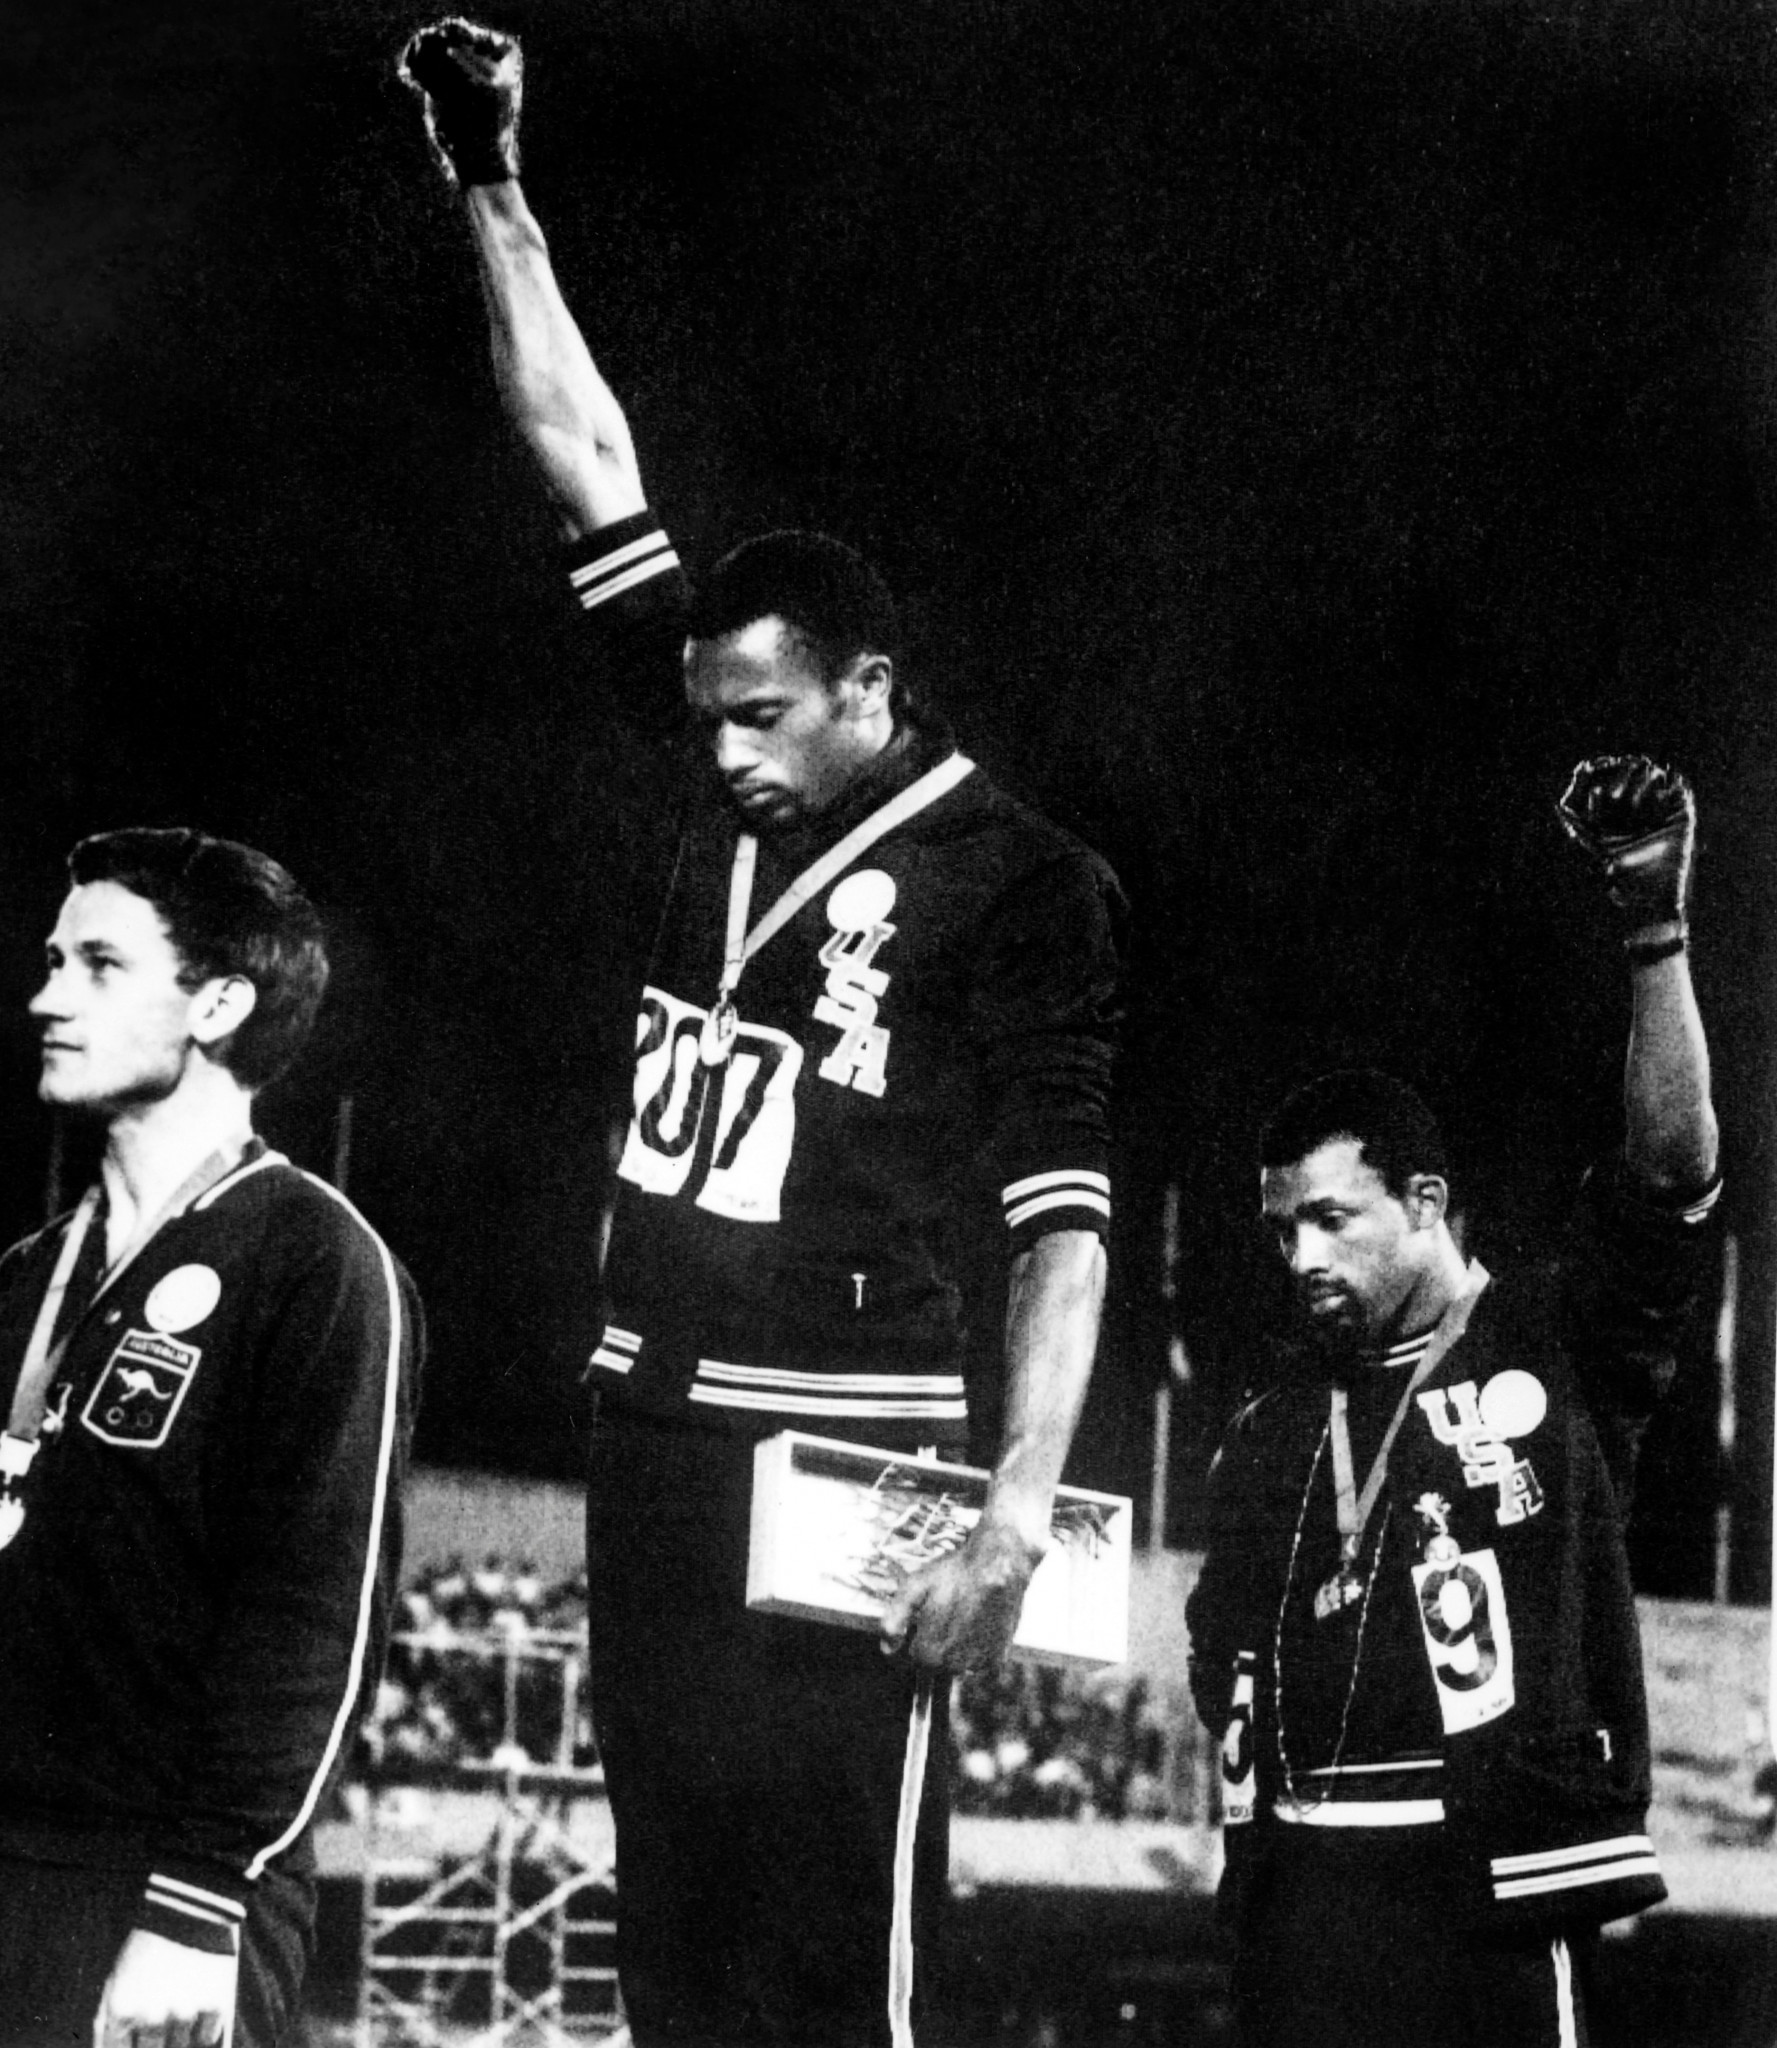 Black Lives Matter movement brings ex-IOC President Brundage under new scrutiny